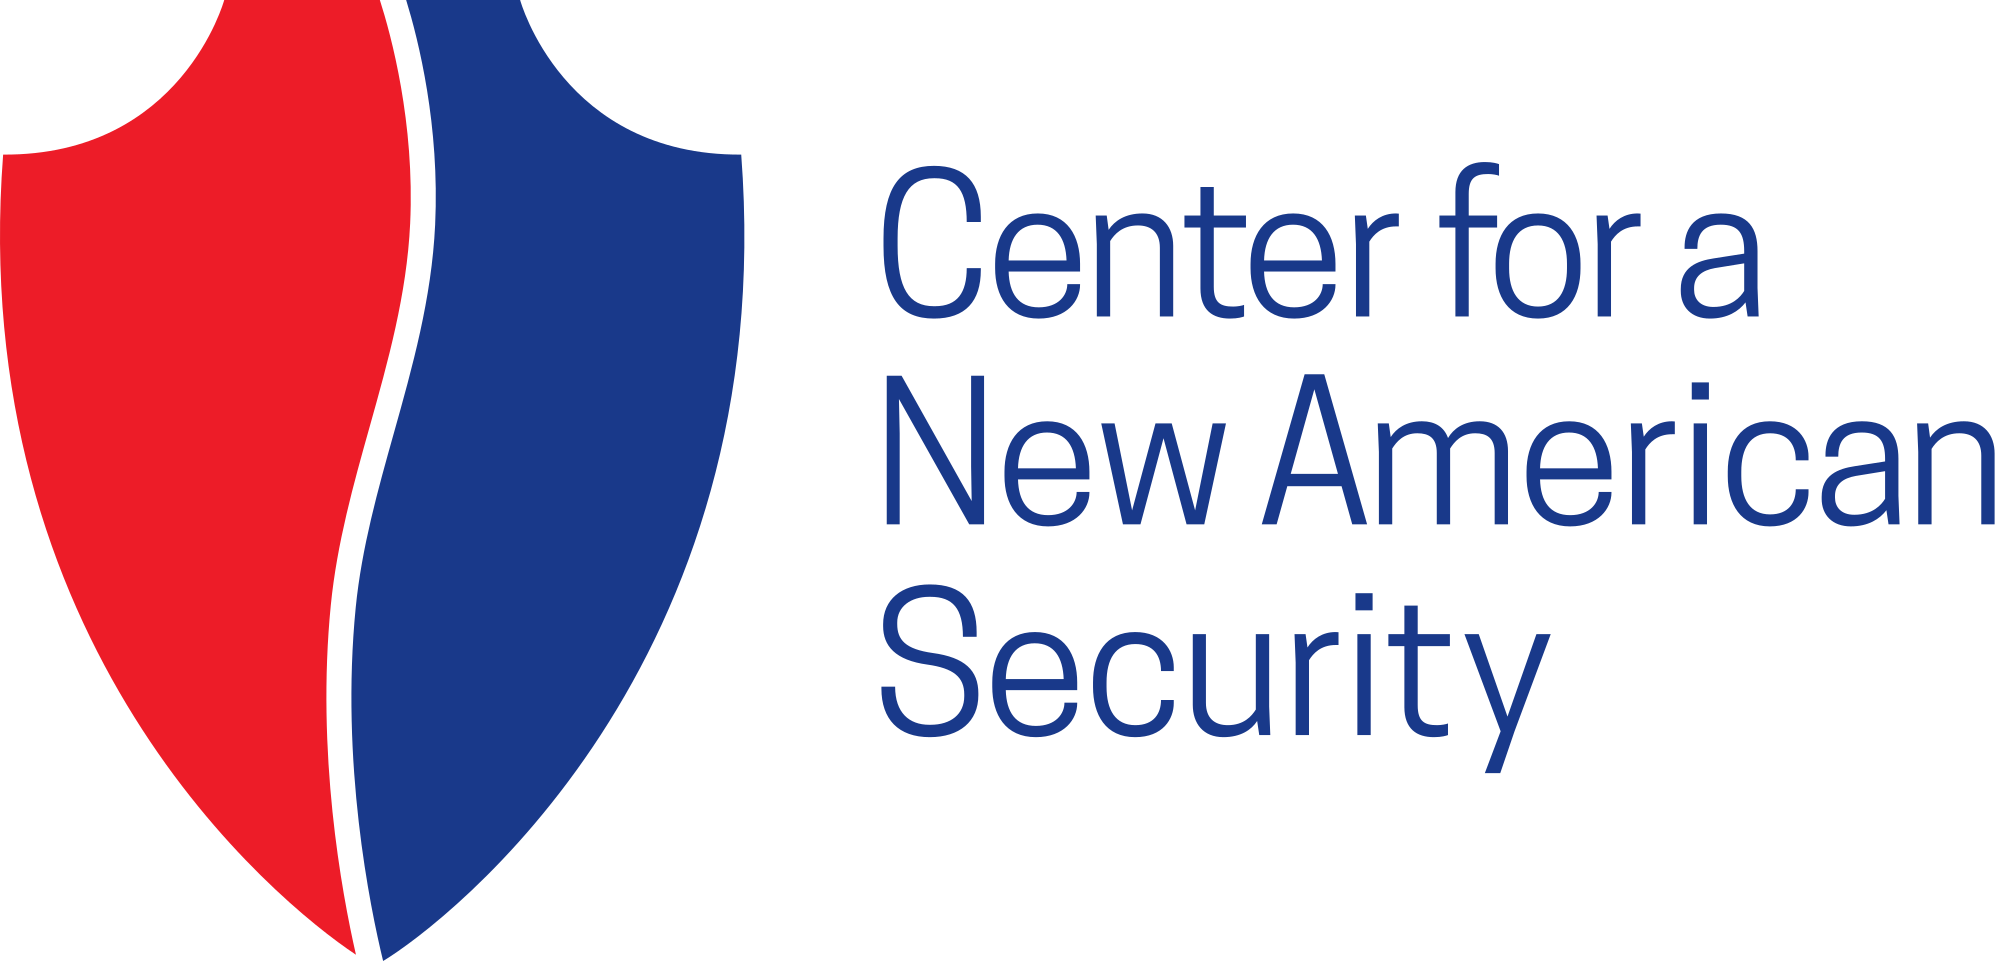 Center for New American Security logo